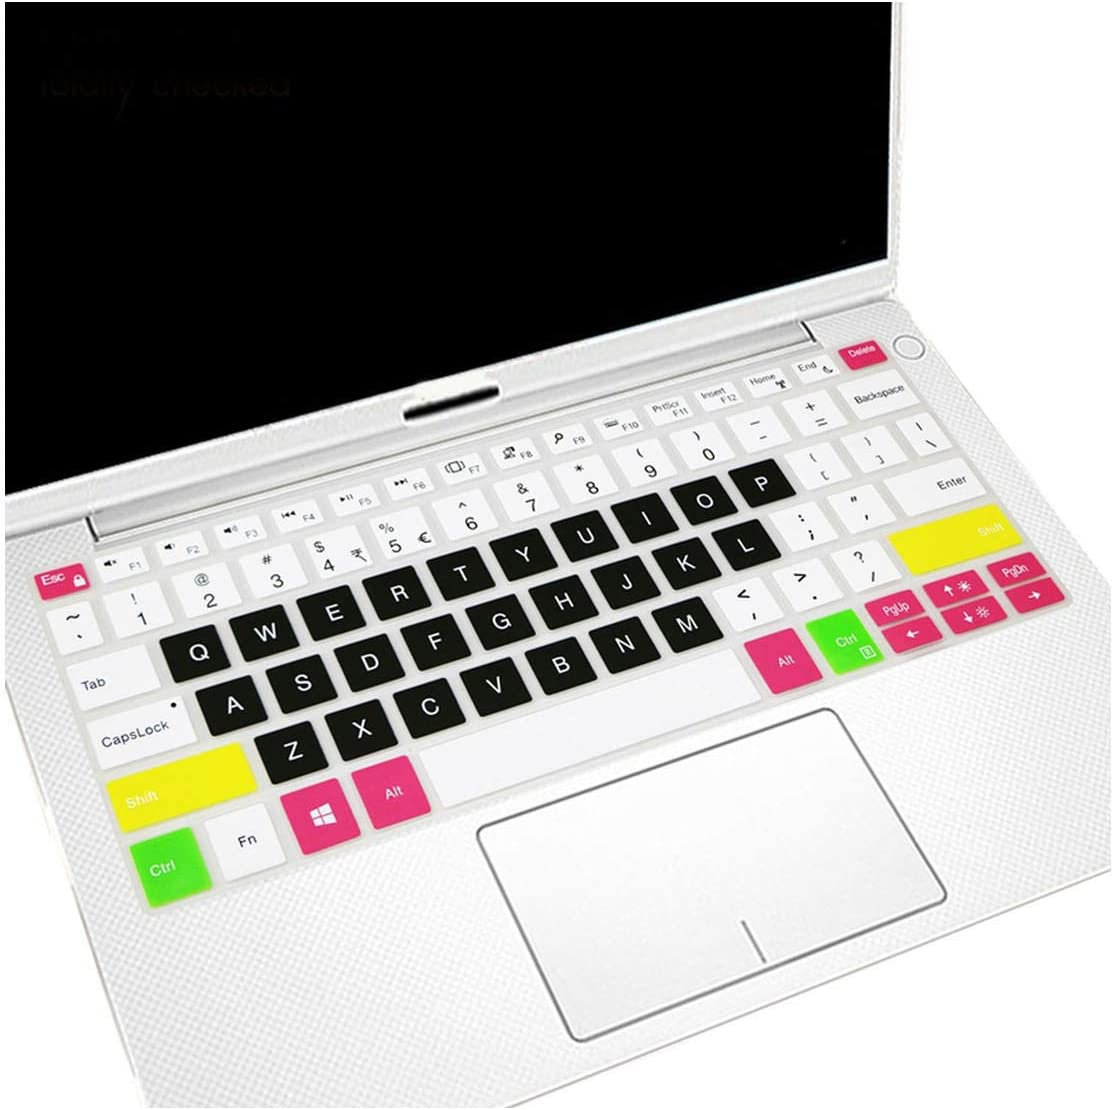 for Dell Xps 13 13 9370 13.3 9370 /& Release Dell Xps 13 9365 13.3 13 9370 9380 13 9365 Xps13 Silicone Keyboard Cover Skin,Black